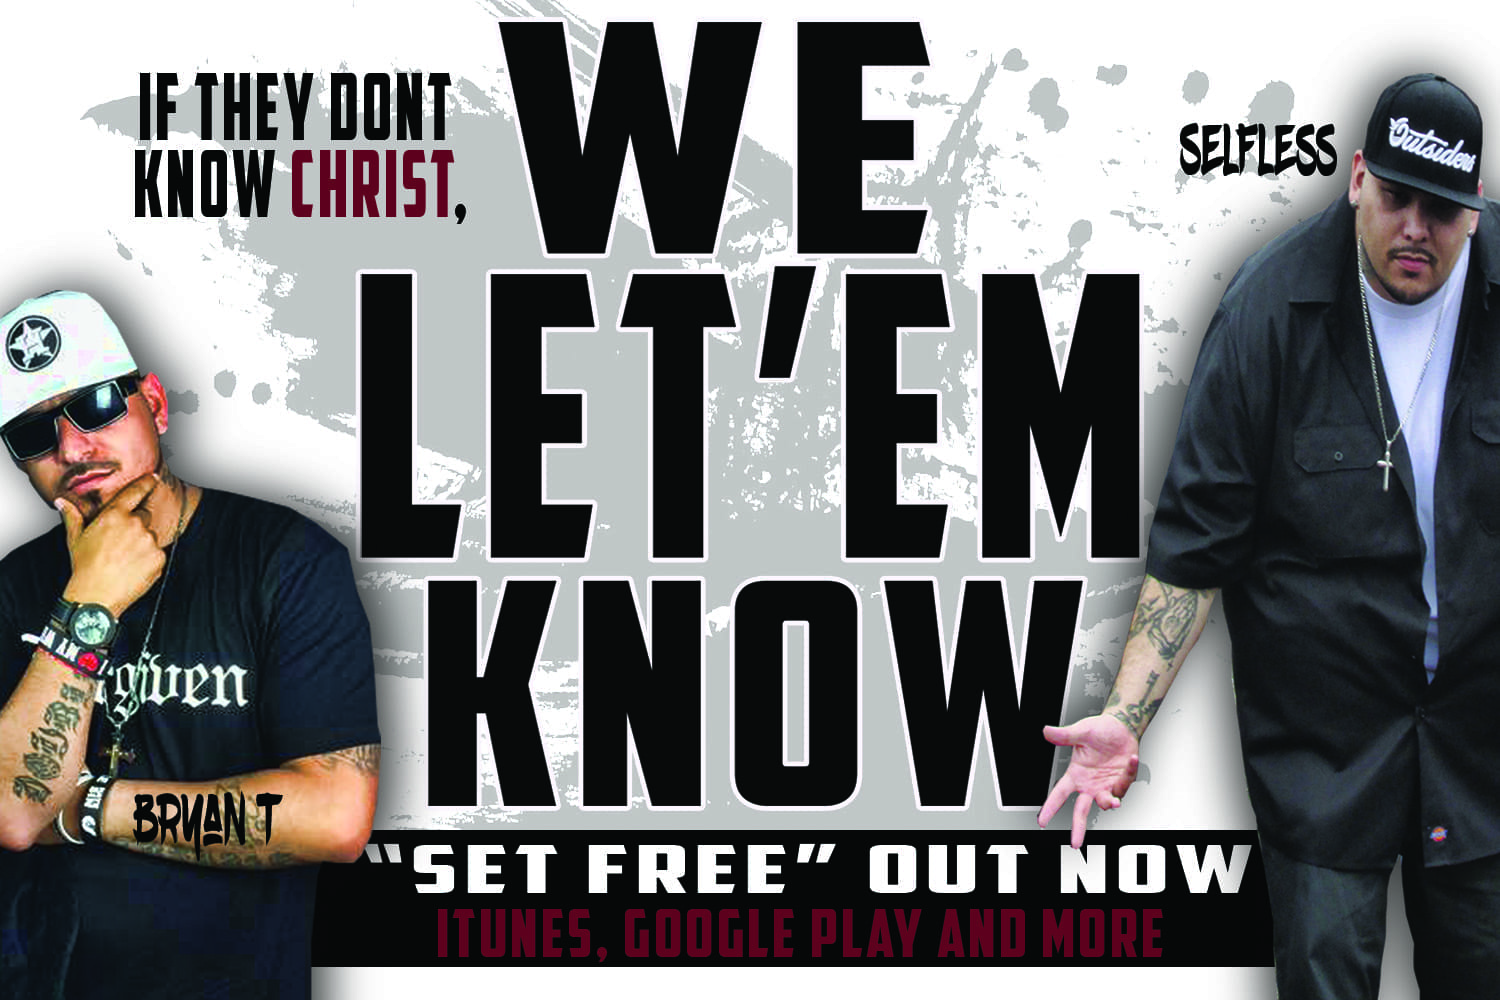 Selfless releases new song & video featuring Bryann T from Kingdom Music. Check It Out!